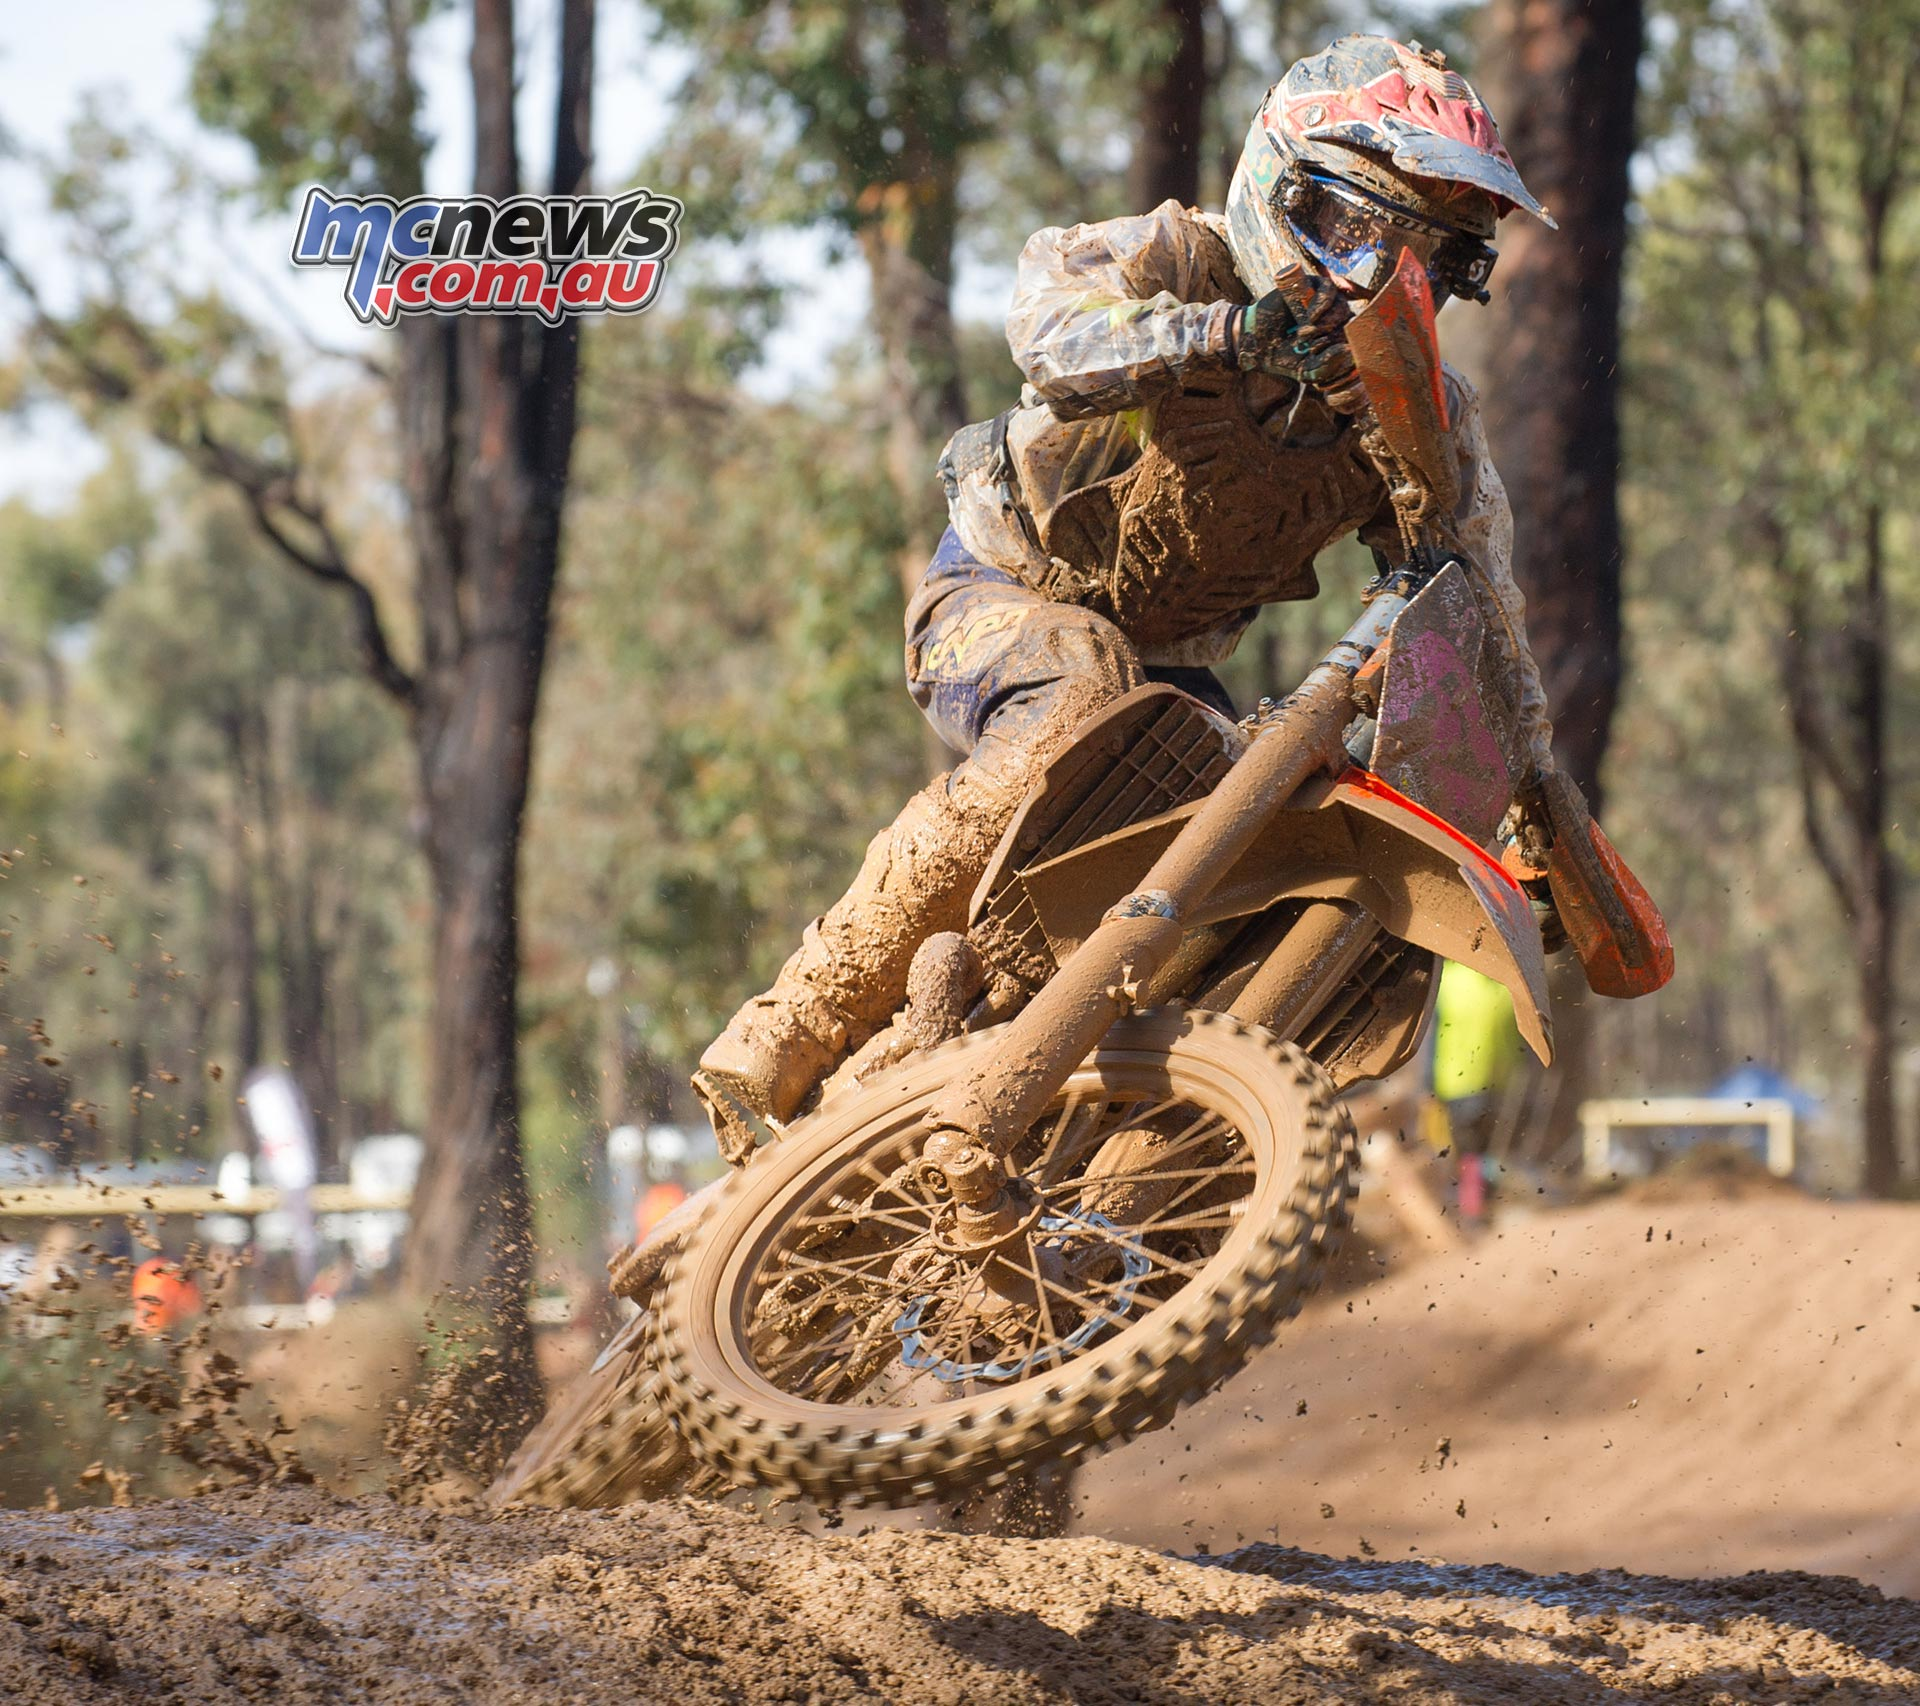 WAMX - Mitch Outram - True Spirit Photos